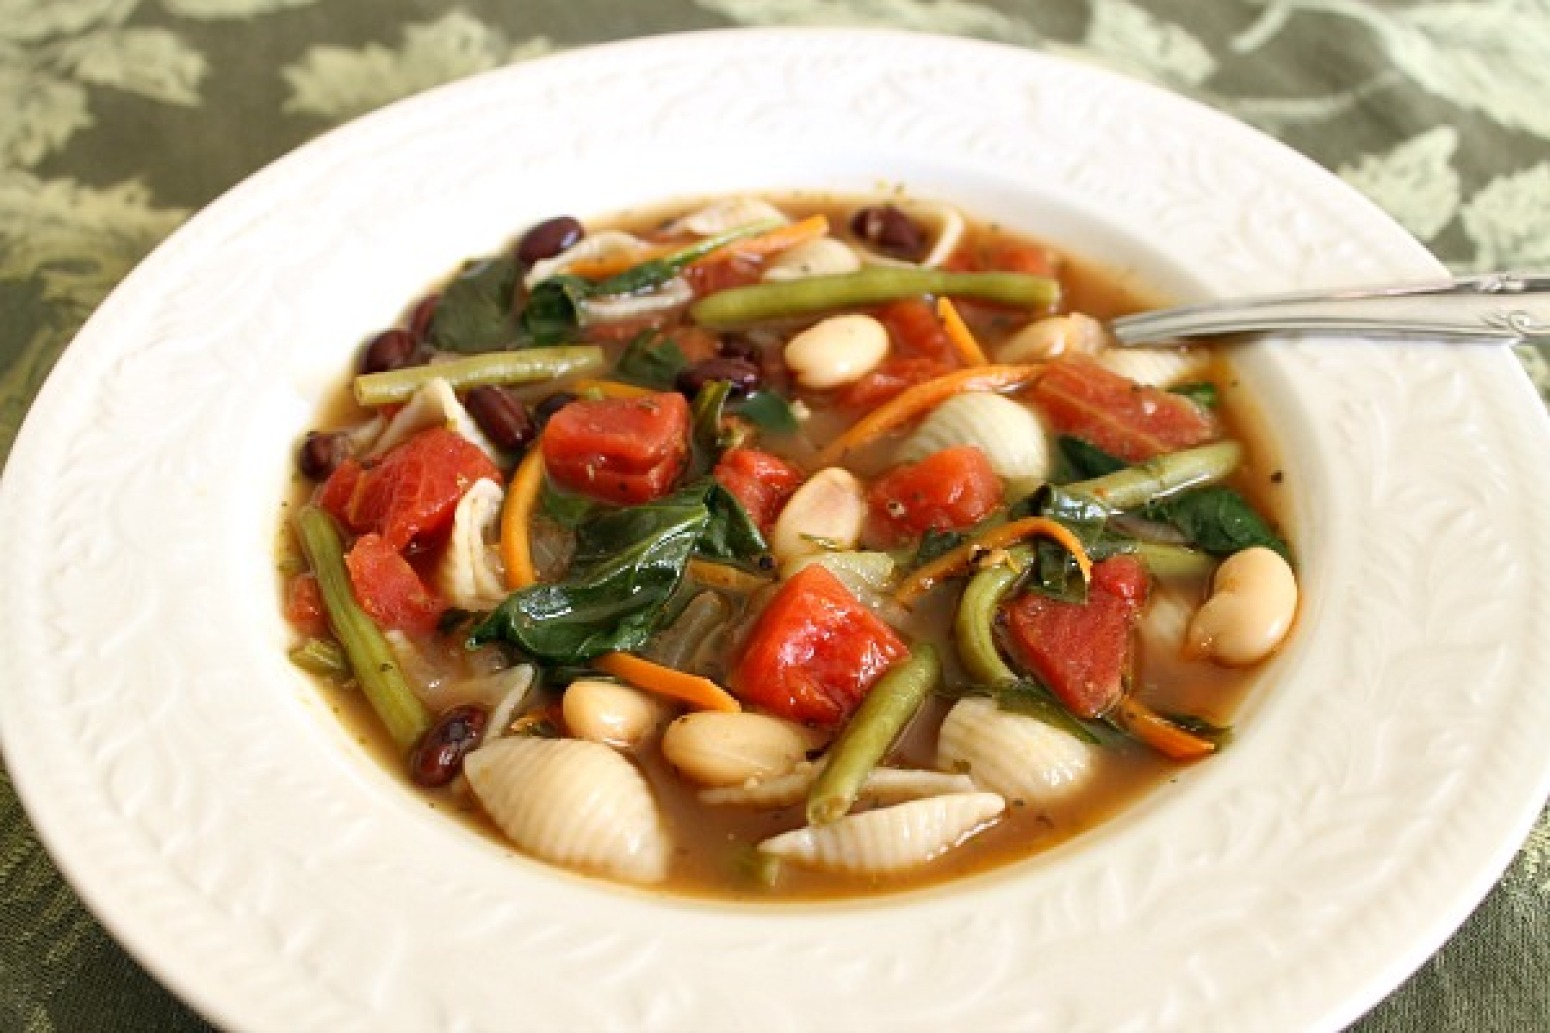 Vegetable garden minestrone soup recipe just a pinch recipes - Minestrone soup olive garden recipe ...